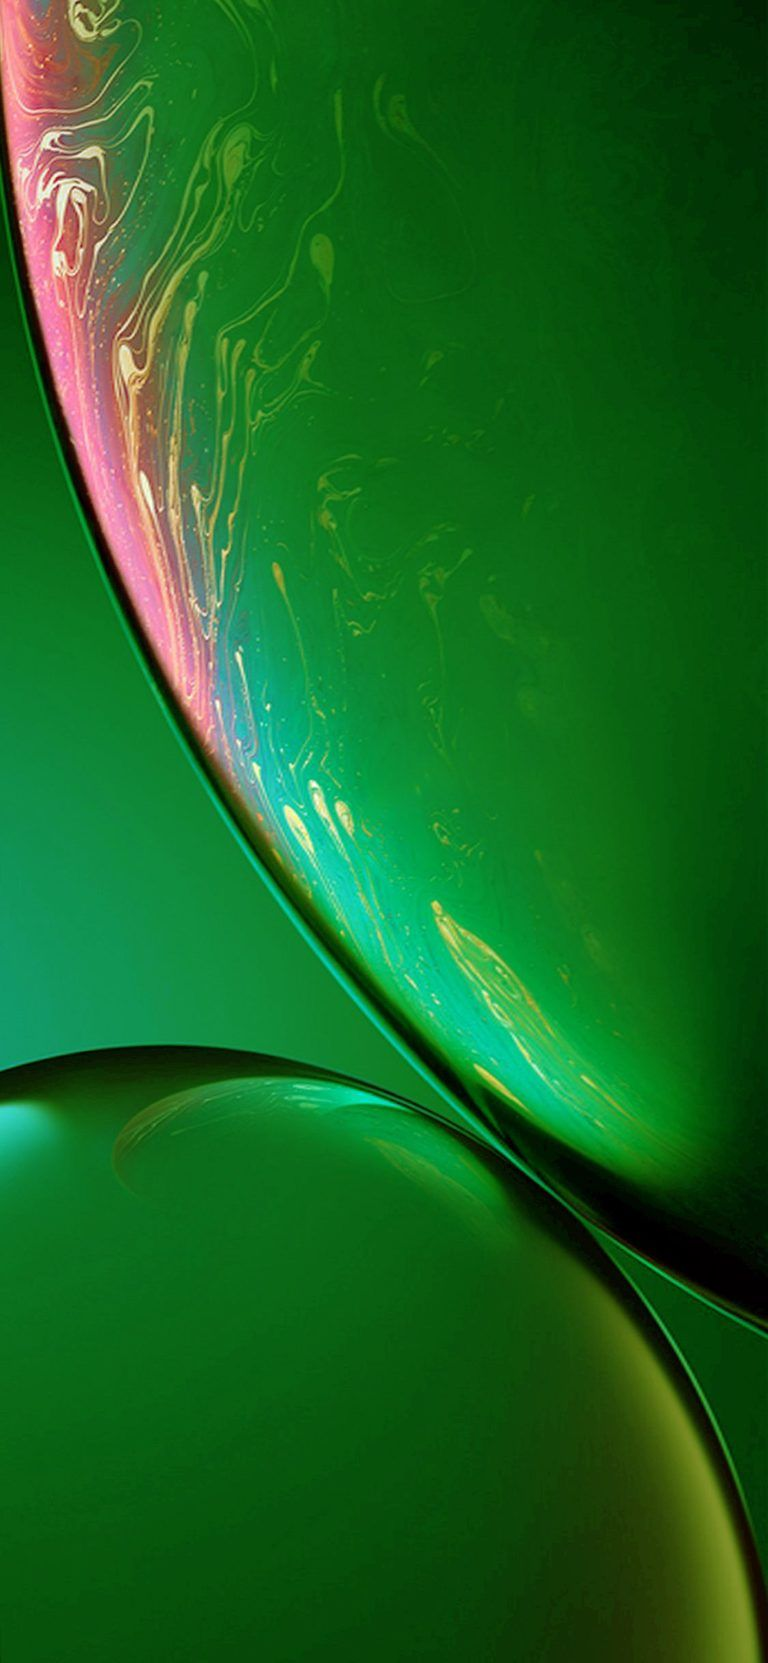 (+15) Live 3d Wallpaper Iphone Terbaru